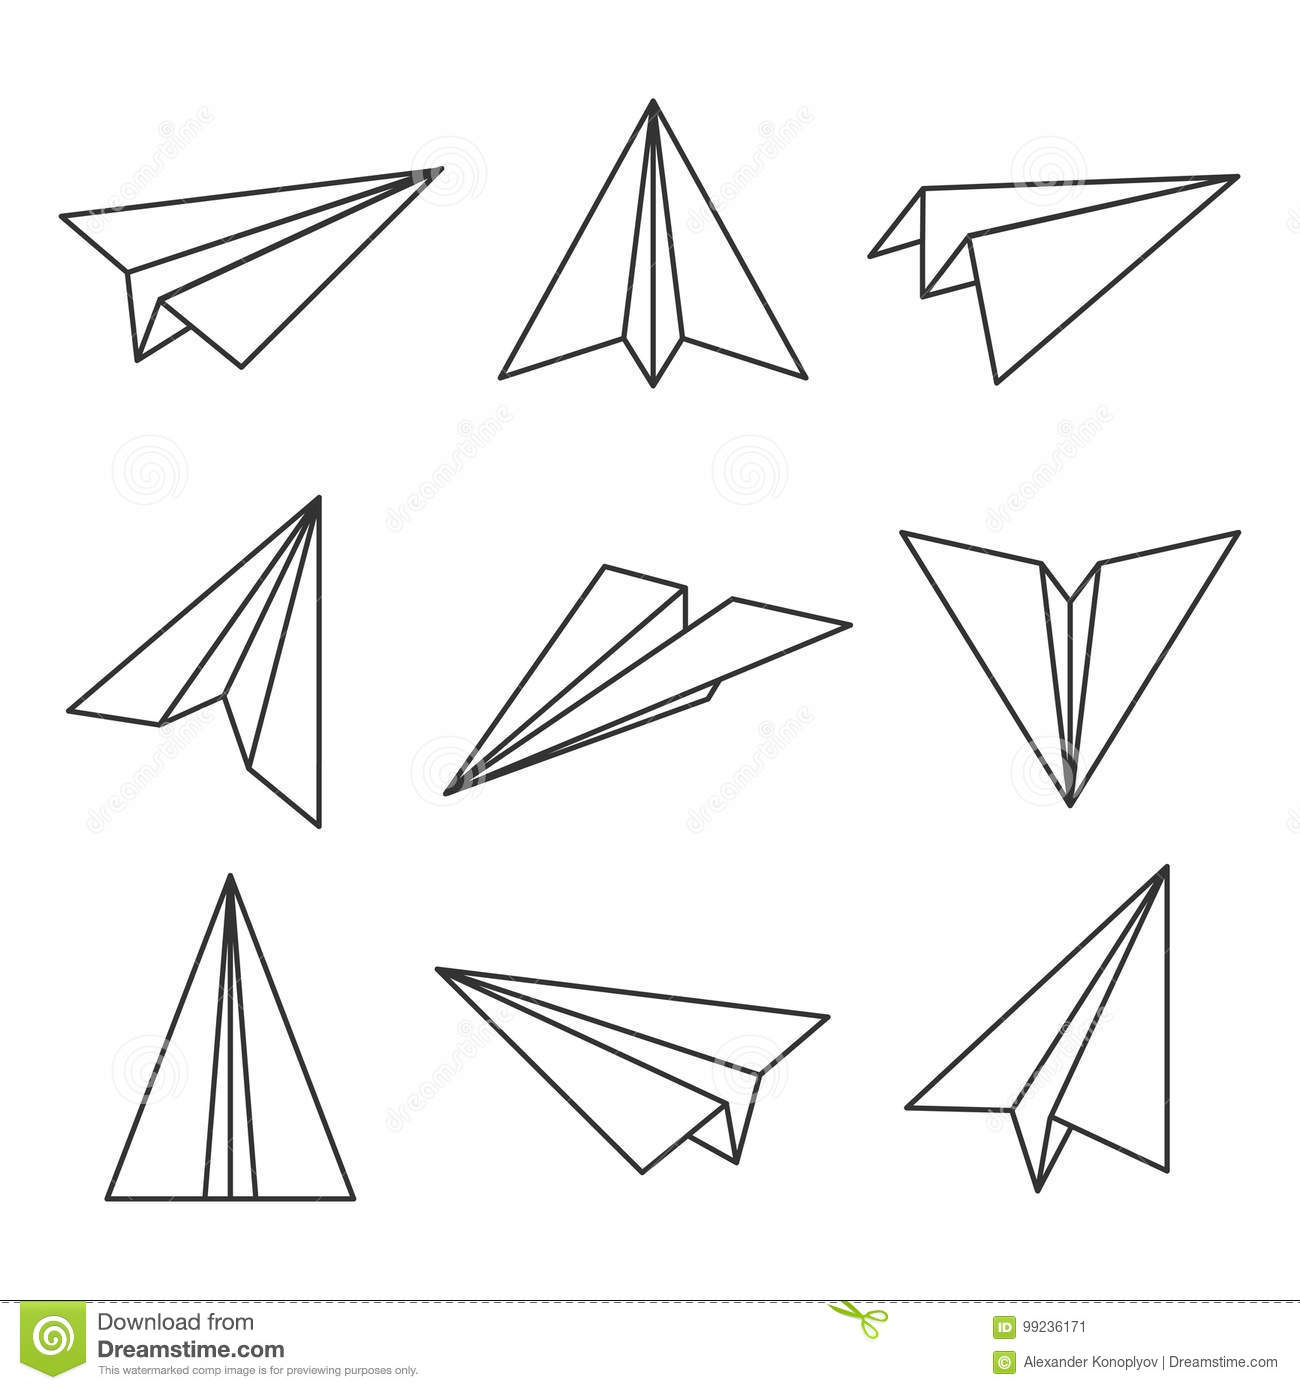 Paper Plane Outline Stock Vector Illustration Of Flight 99236171